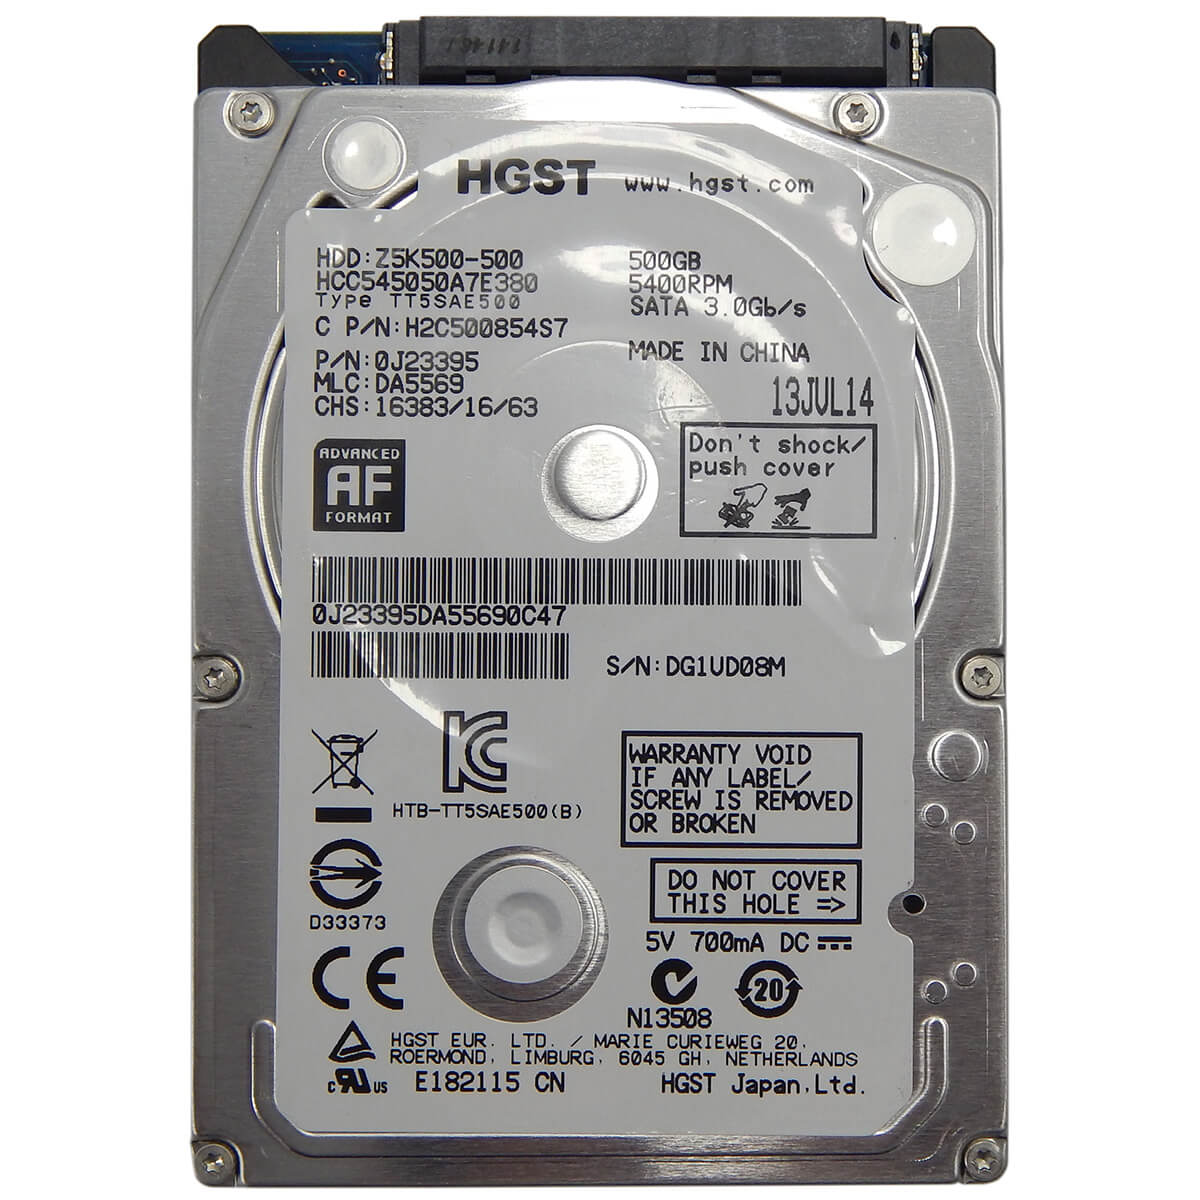 HD p/ Notebook 500Gb Sata 3.0Gb/s 5400rpm HGST Z5K500-500 - Novo